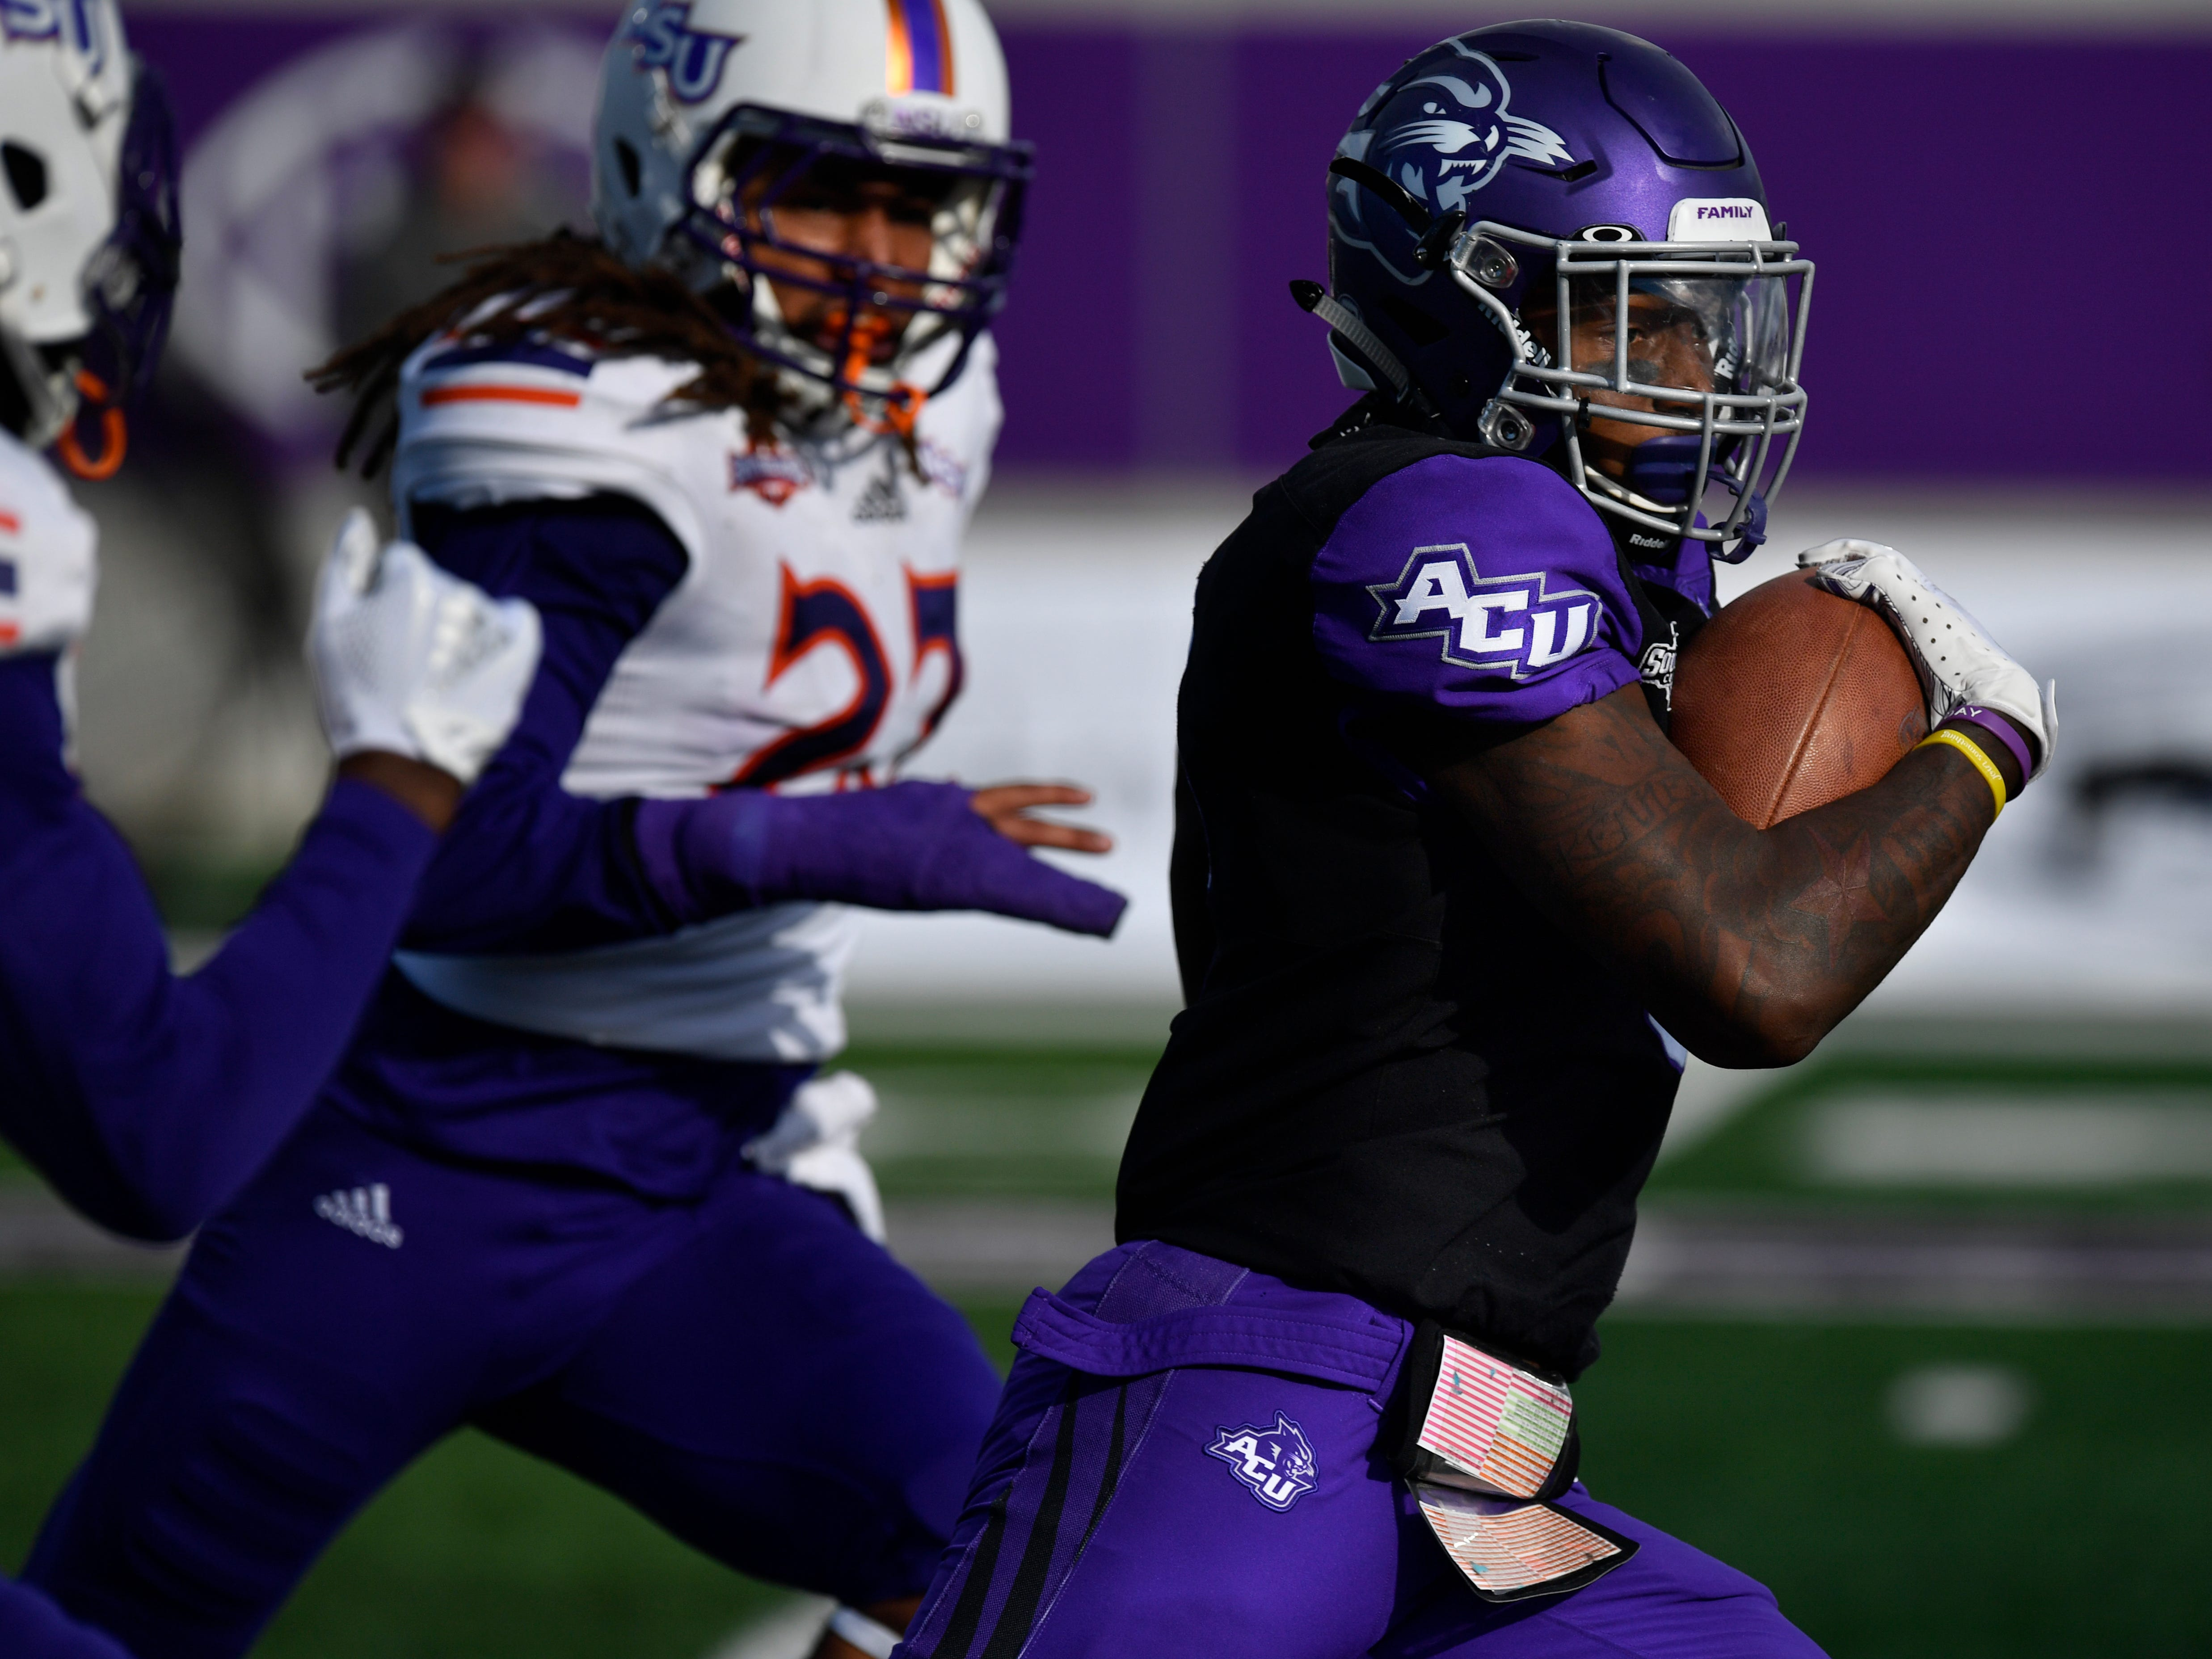 Wildcats wide receiver Kalin Sadler carries the ball downfield against Northwestern State Saturday Nov. 3, 2018. Final score was 49-47, Abilene Christian University.